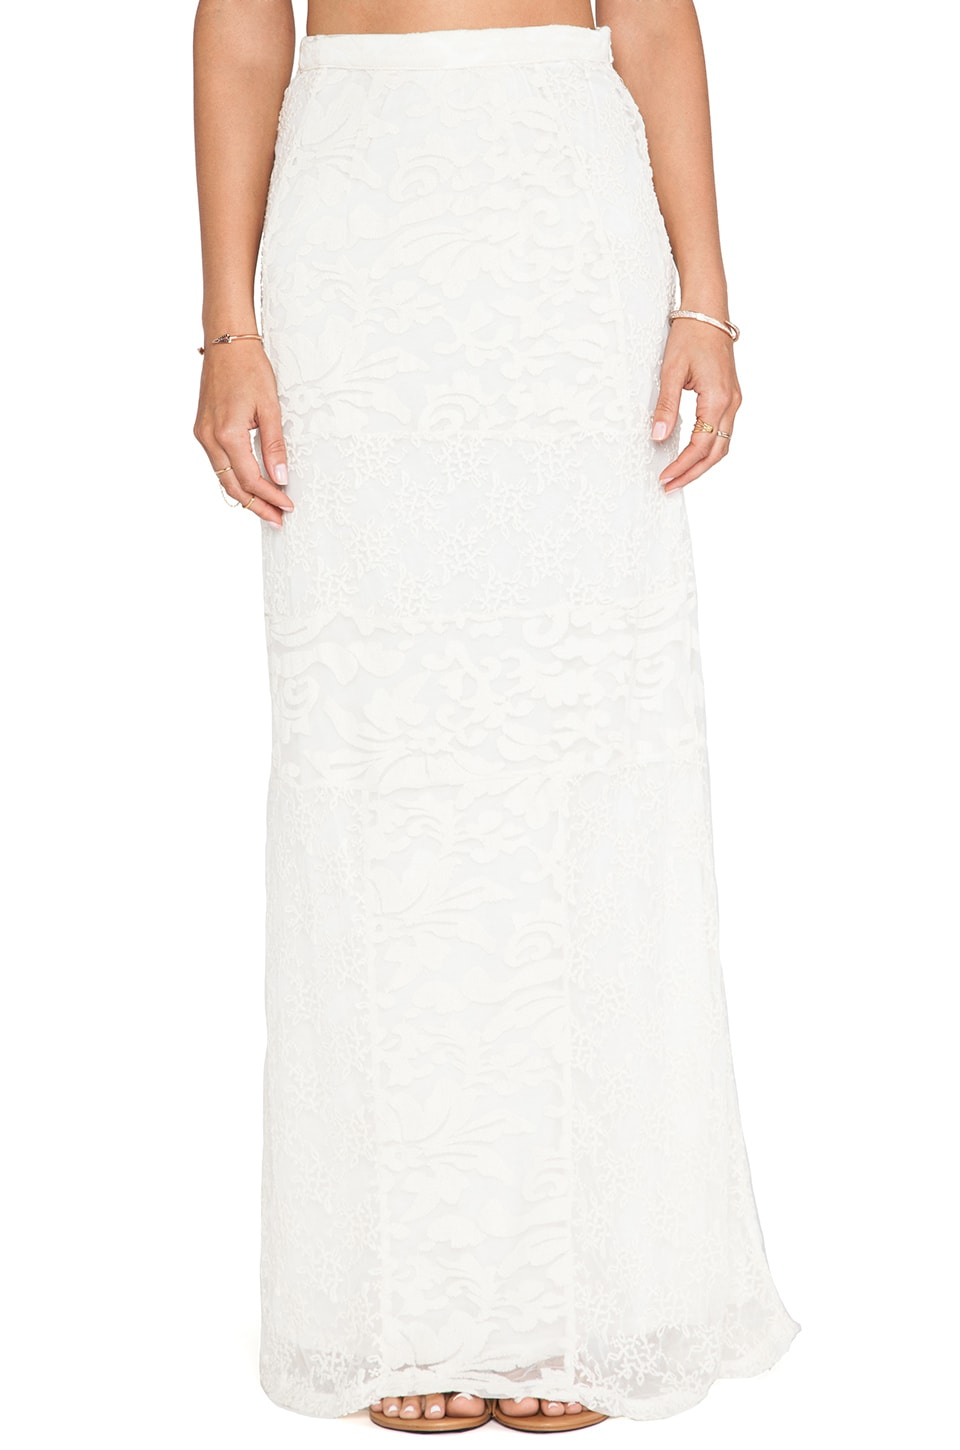 Gypsy 05 Embroidered Panel Maxi Skirt in Natural